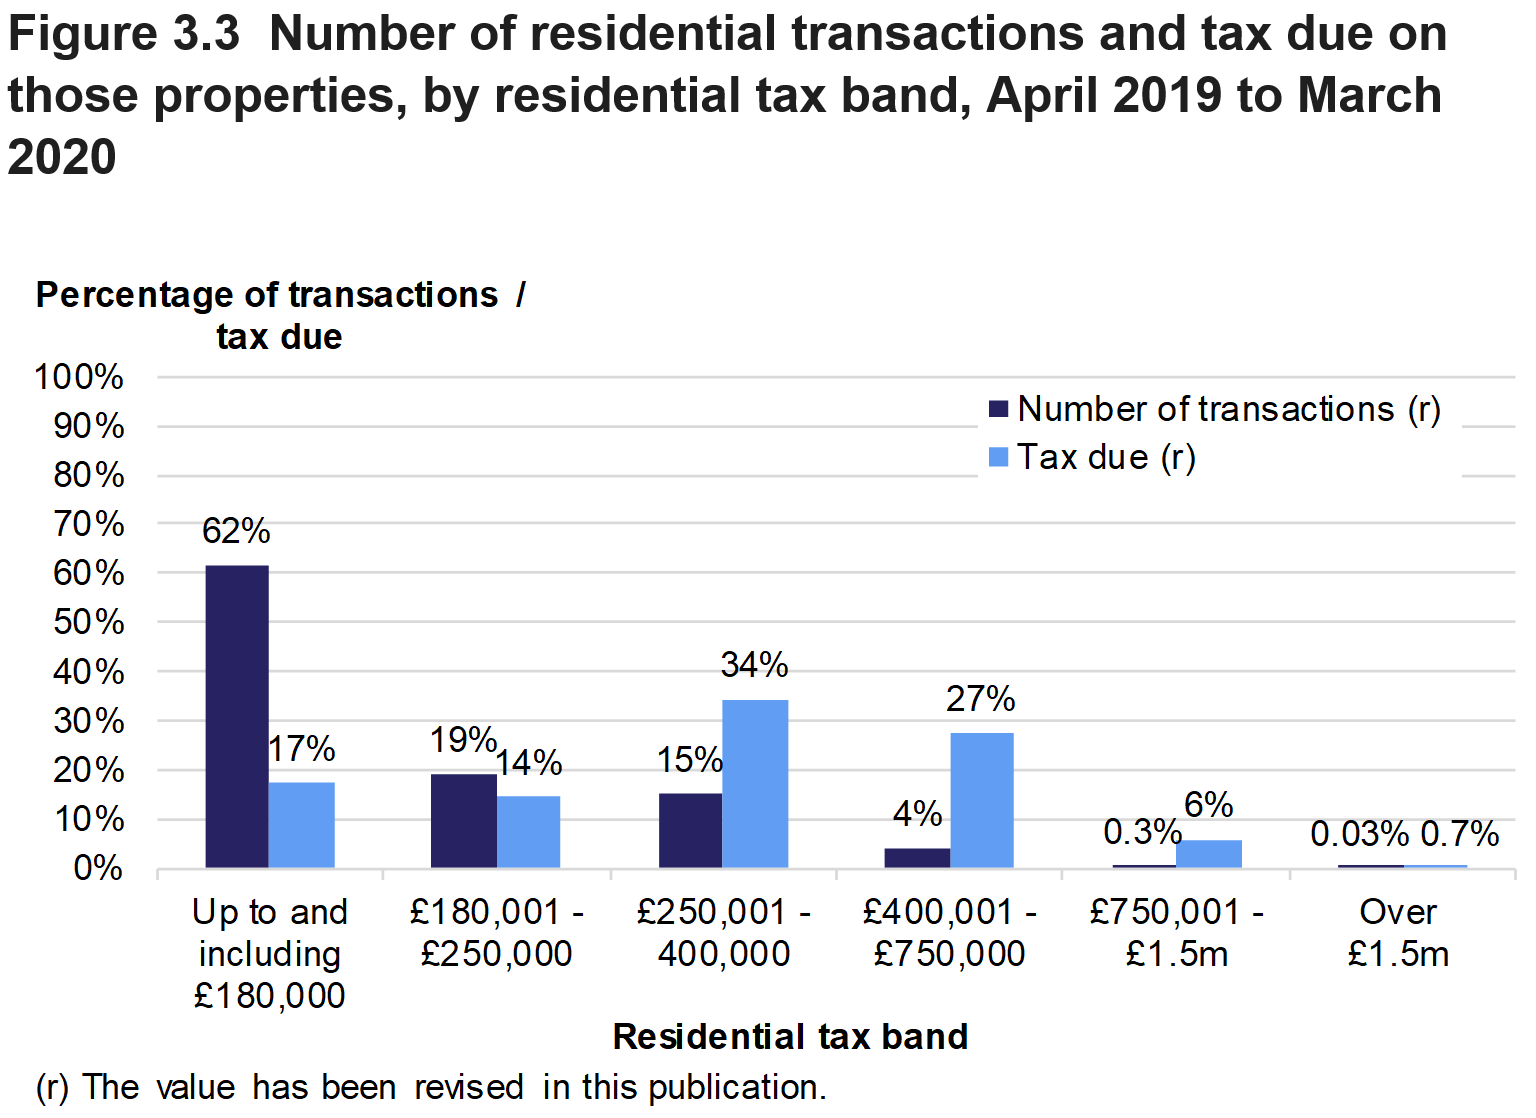 Figure 3.3 shows the number of residential transactions and amount of tax due, by residential tax band. Data is presented as the percentage of transactions or tax due and relates to transactions effective in April 2019 to March 2020.